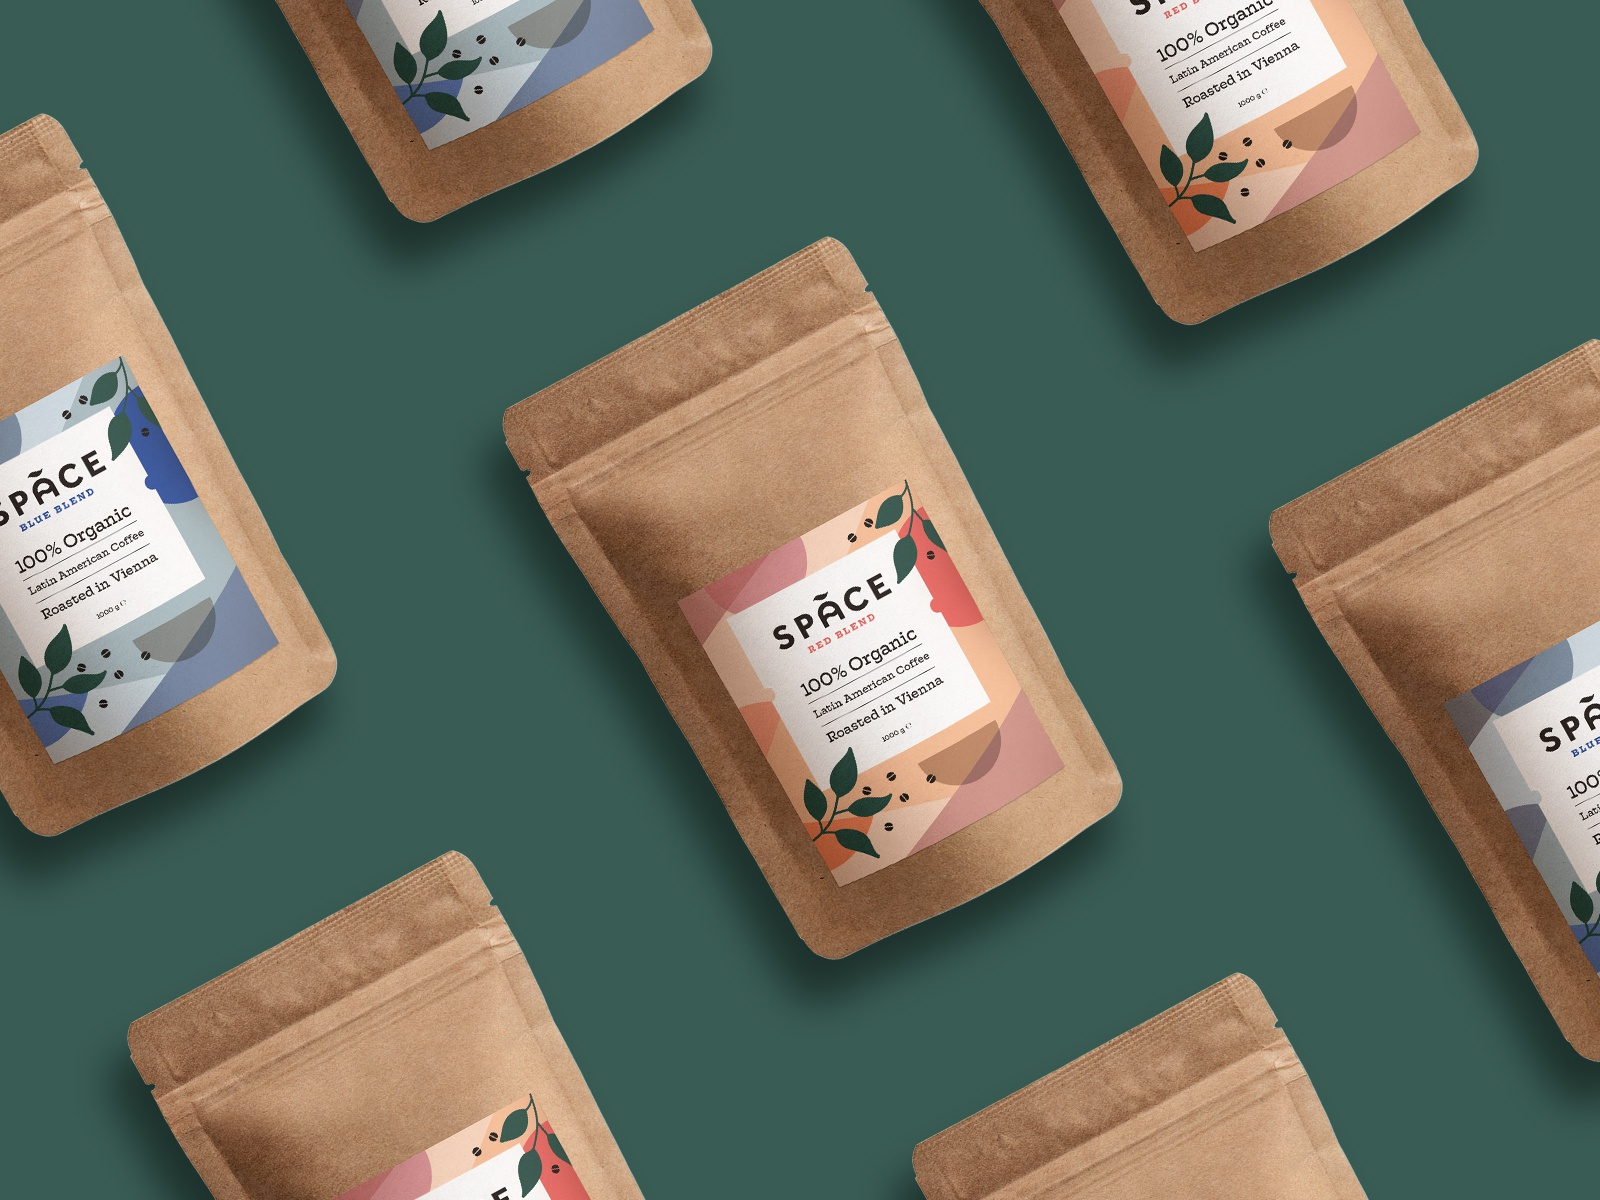 Space coffee package dribbble v04